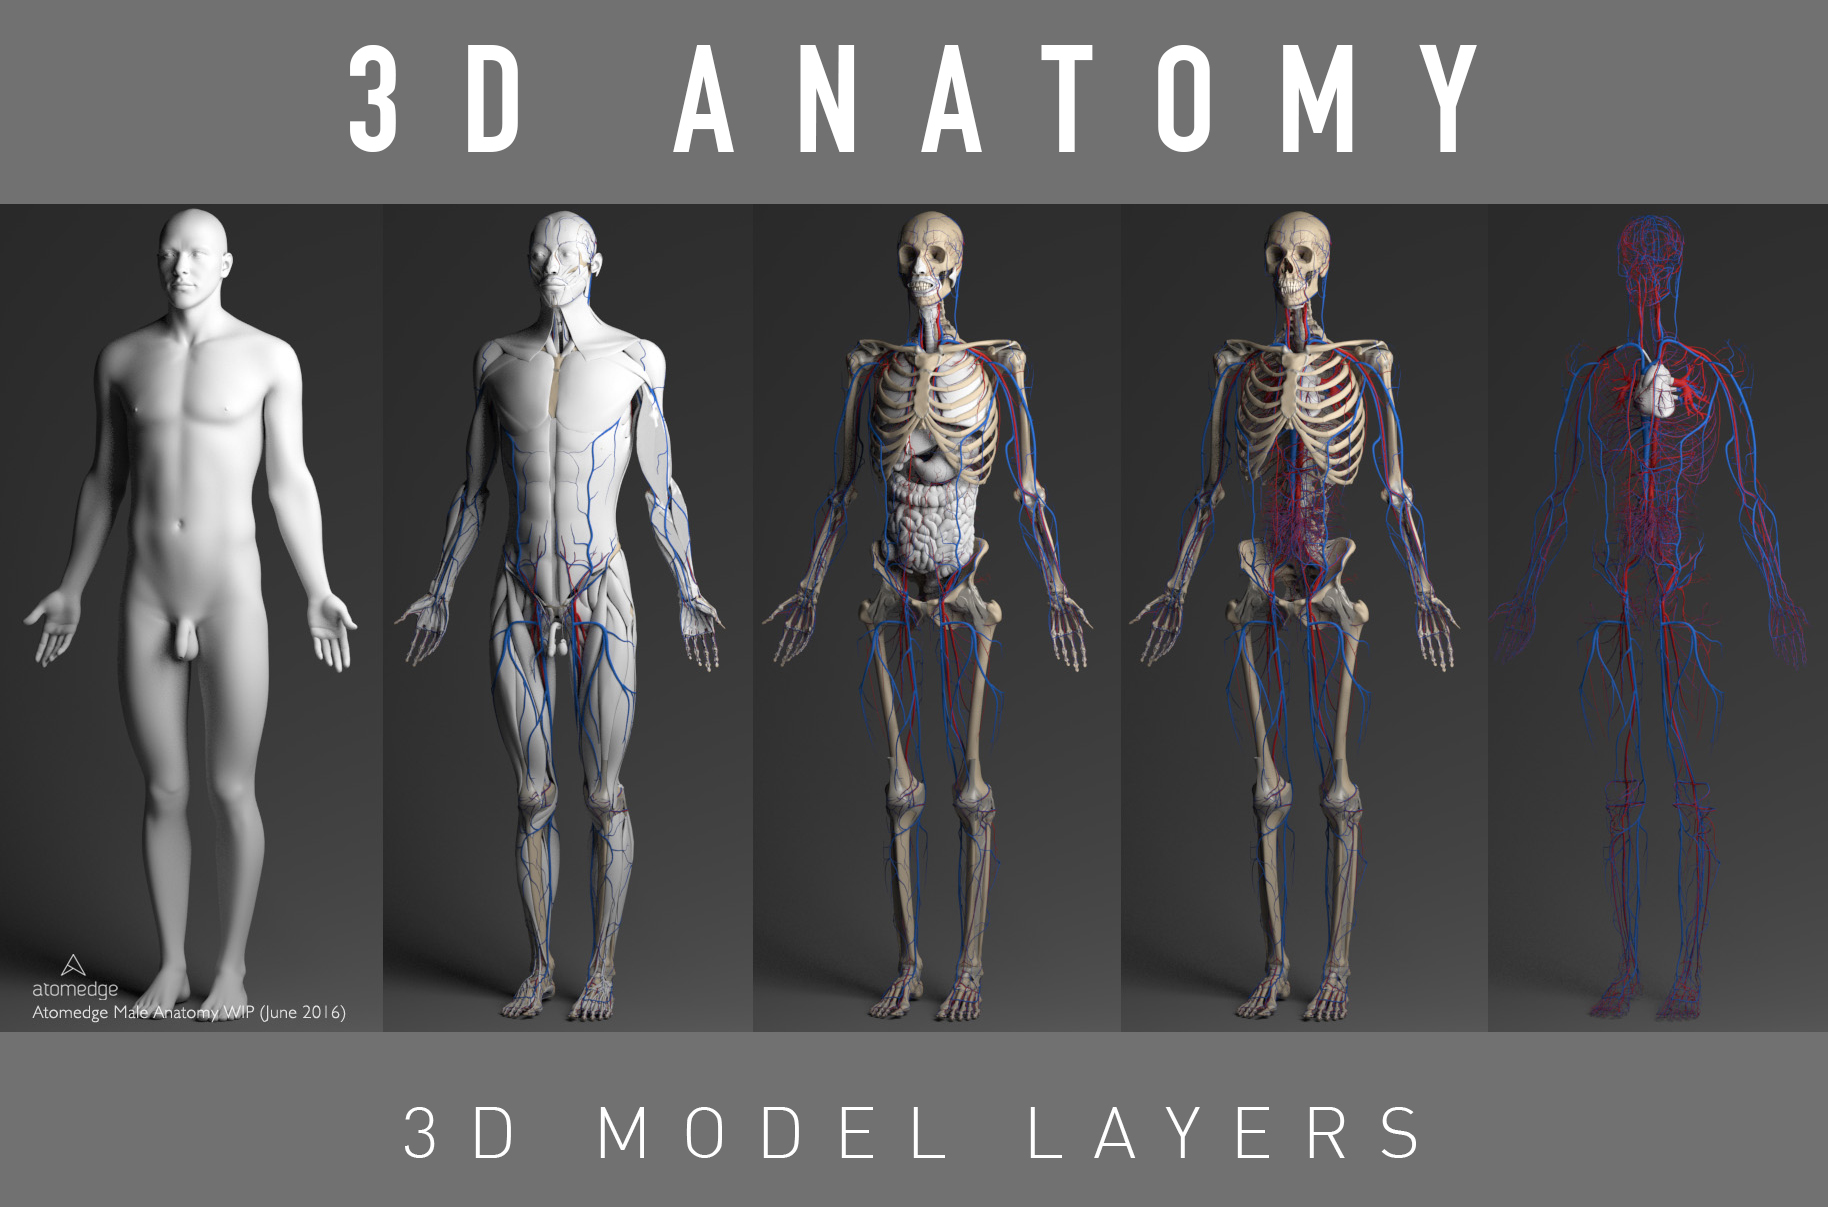 3D Artist (Modeling & Texturing) FULL TIME JOB - Cape Town